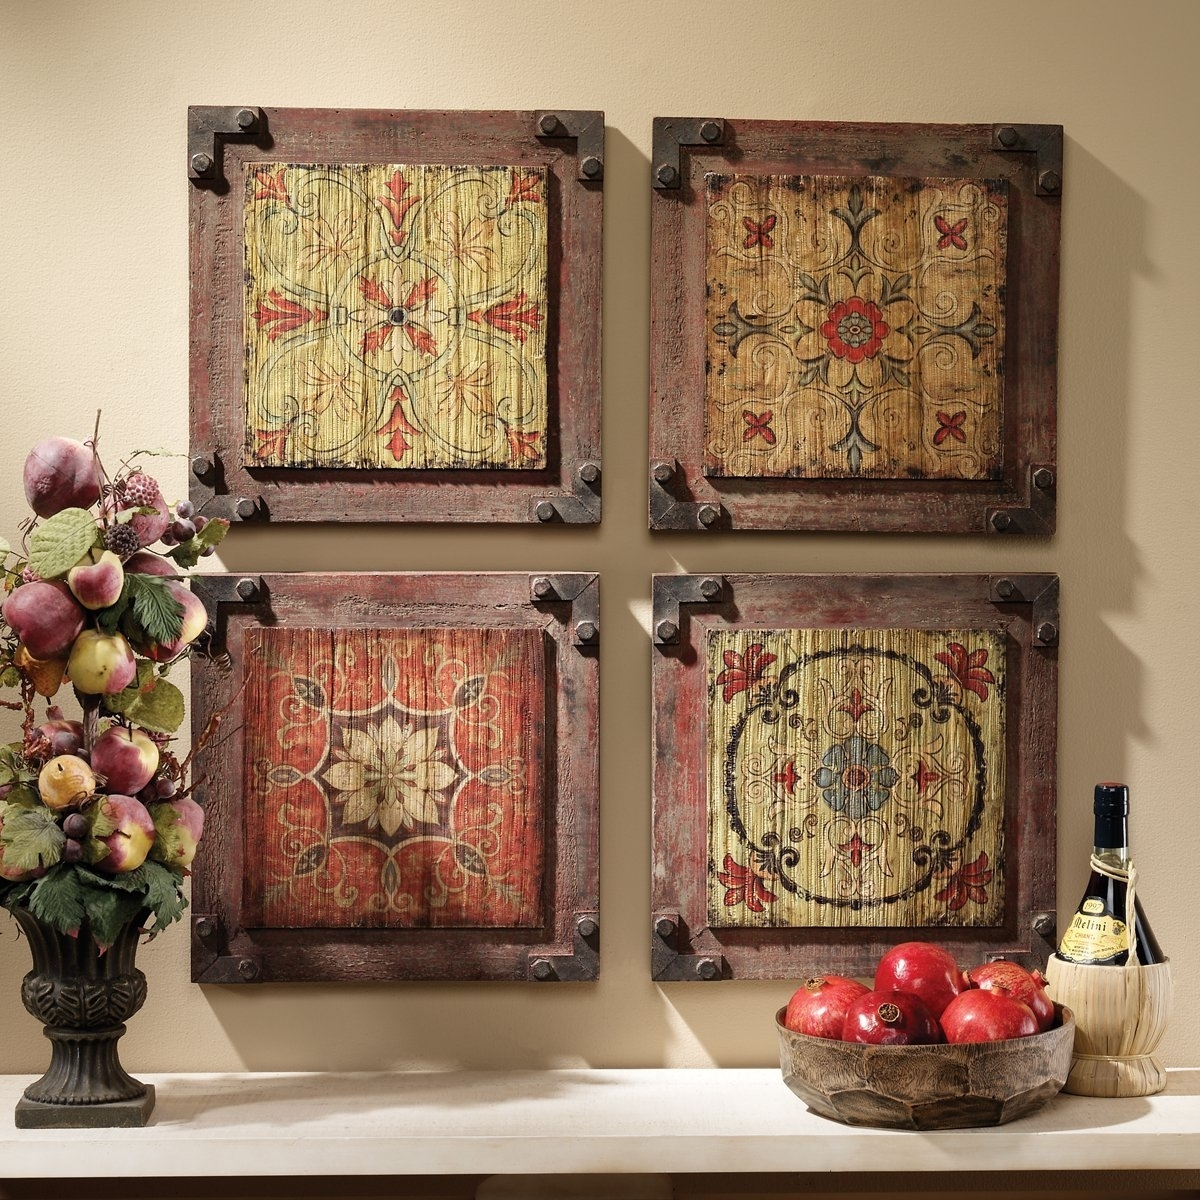 Vintage Wall Decorations New Vintage Wall Decoration – Wall Art Throughout Recent Vintage Wall Accents (View 12 of 15)